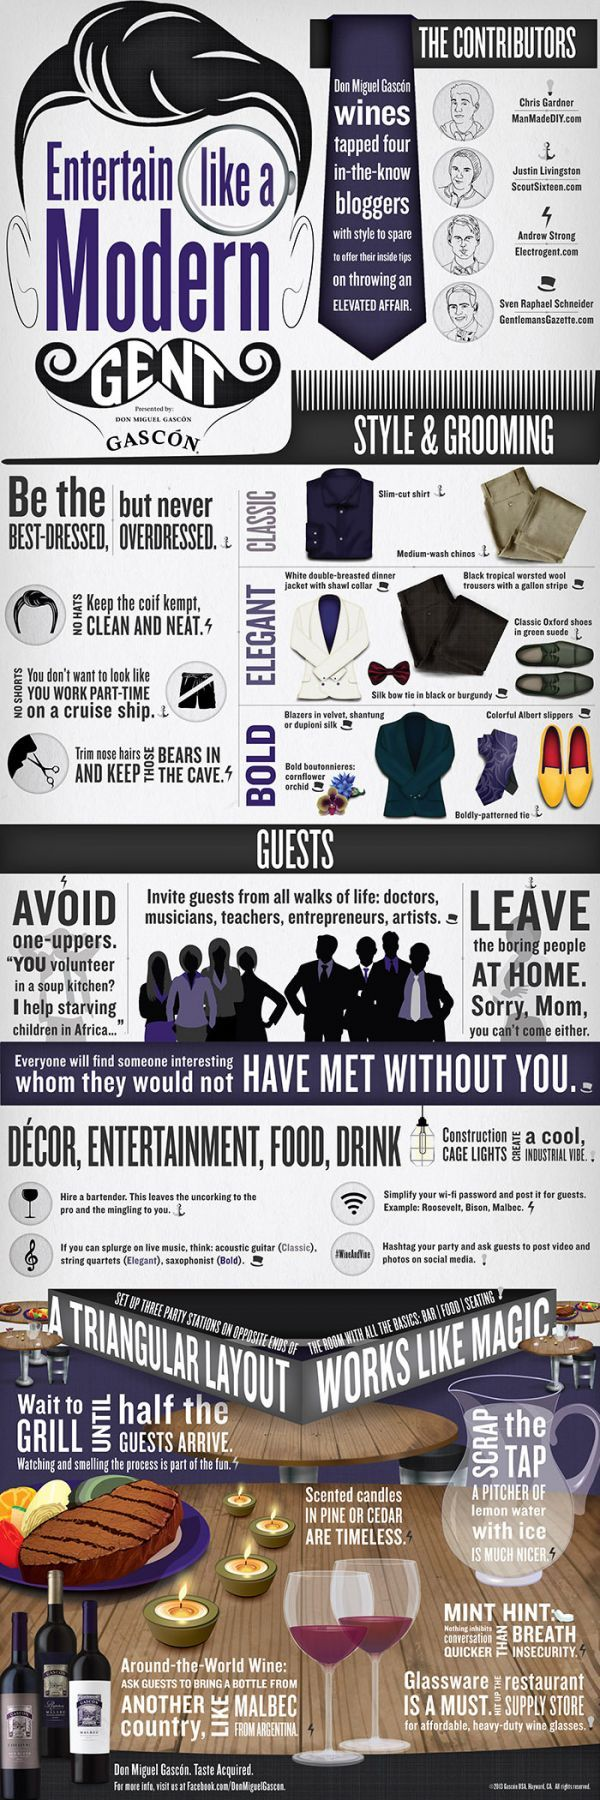 Entertain like a Gentleman [Infographic] from Details Network